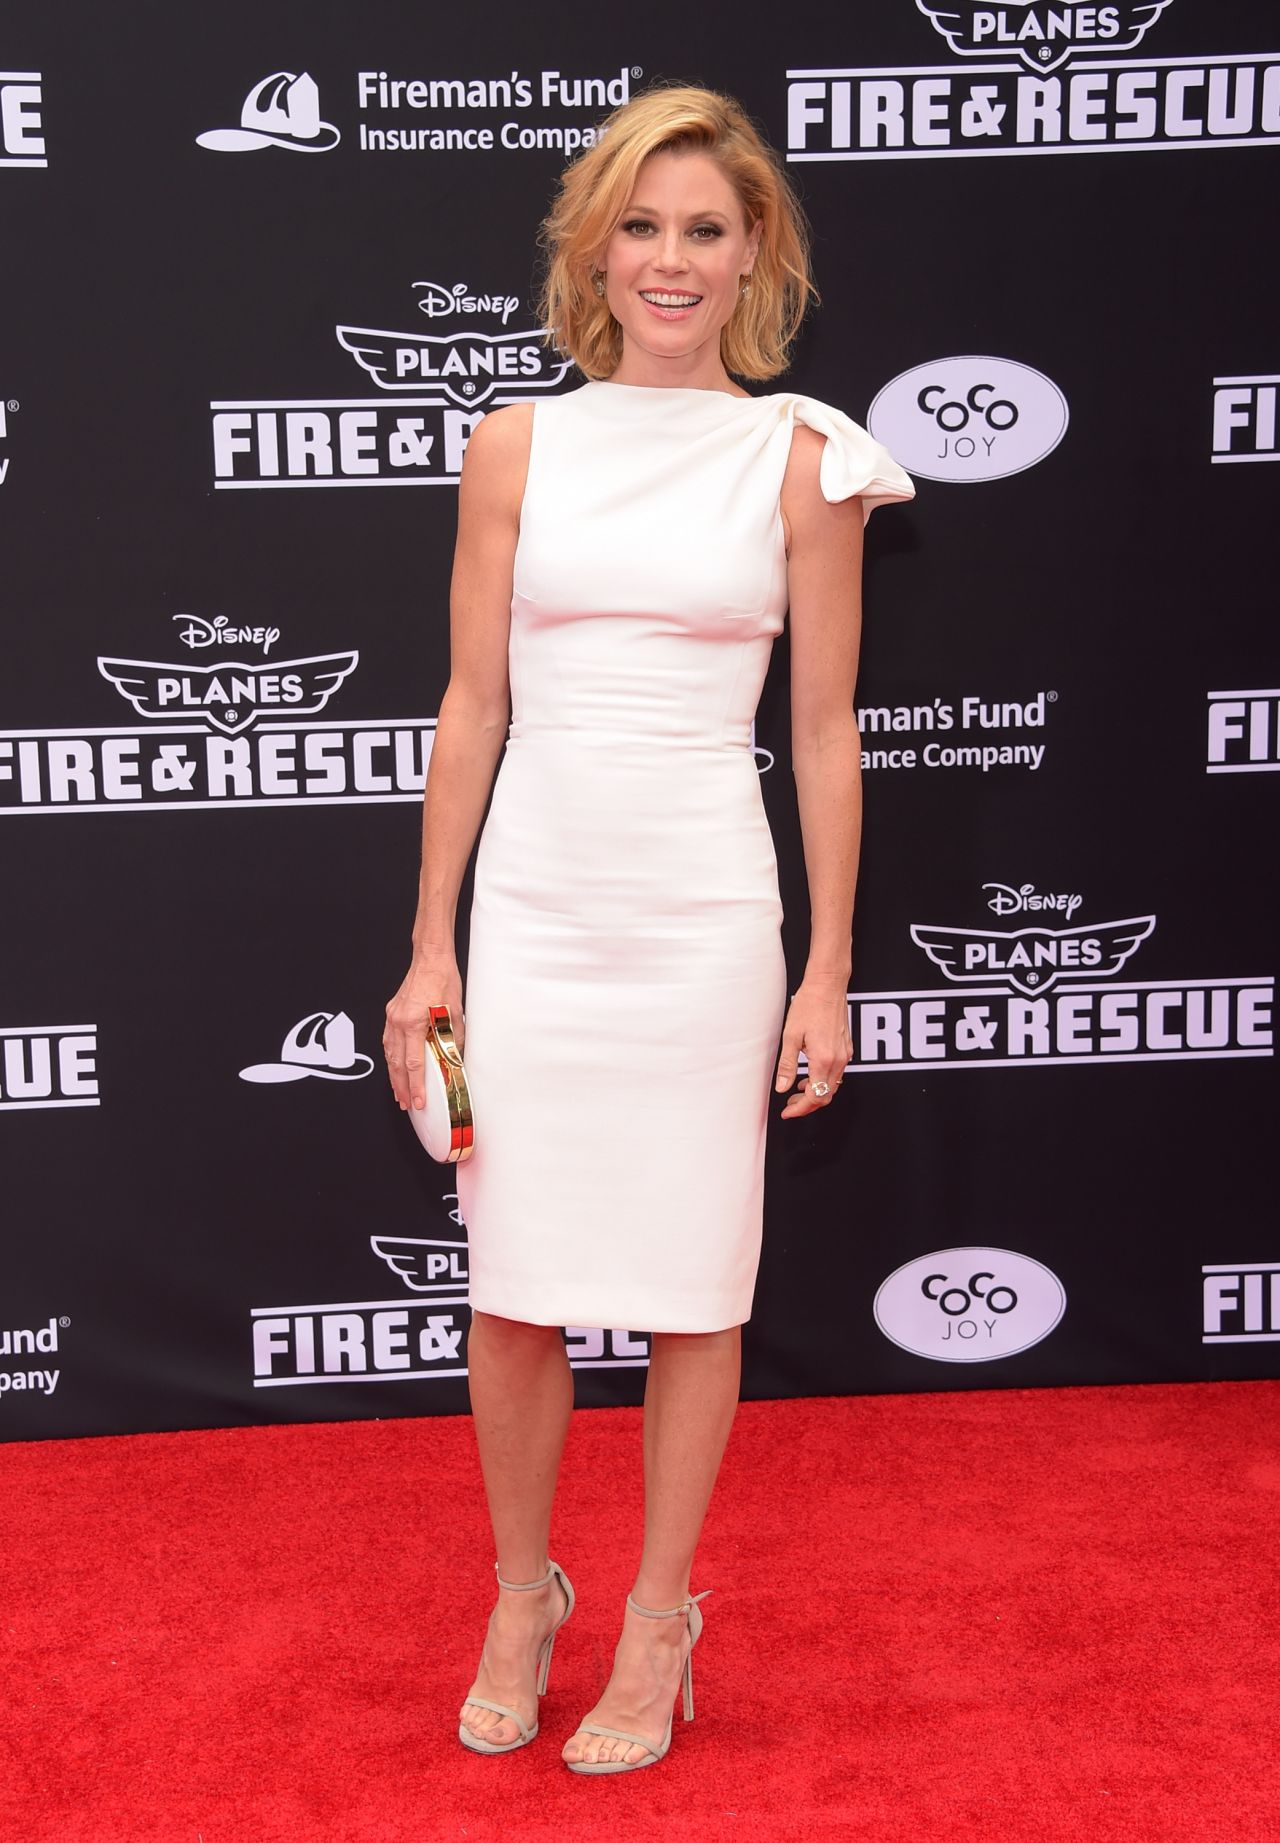 Julie Bowen Planes Fire Amp Rescue Premiere In Hollywood